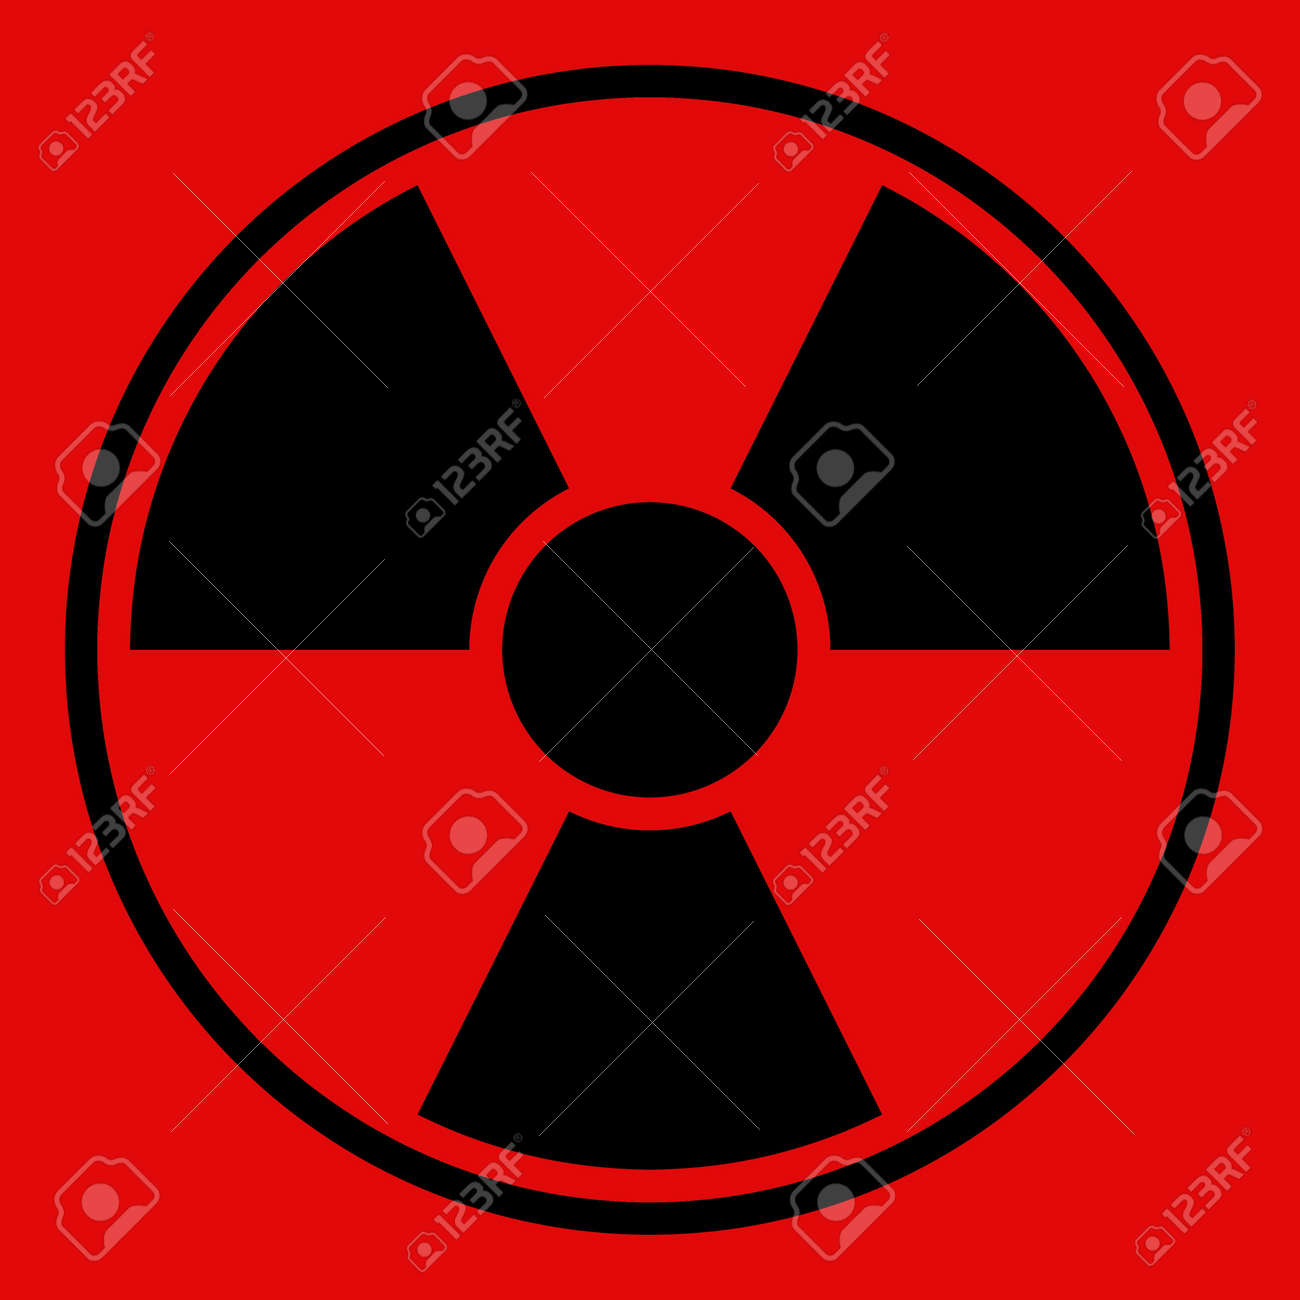 Round radiation warning sign on red background Stock Photo - 7555902